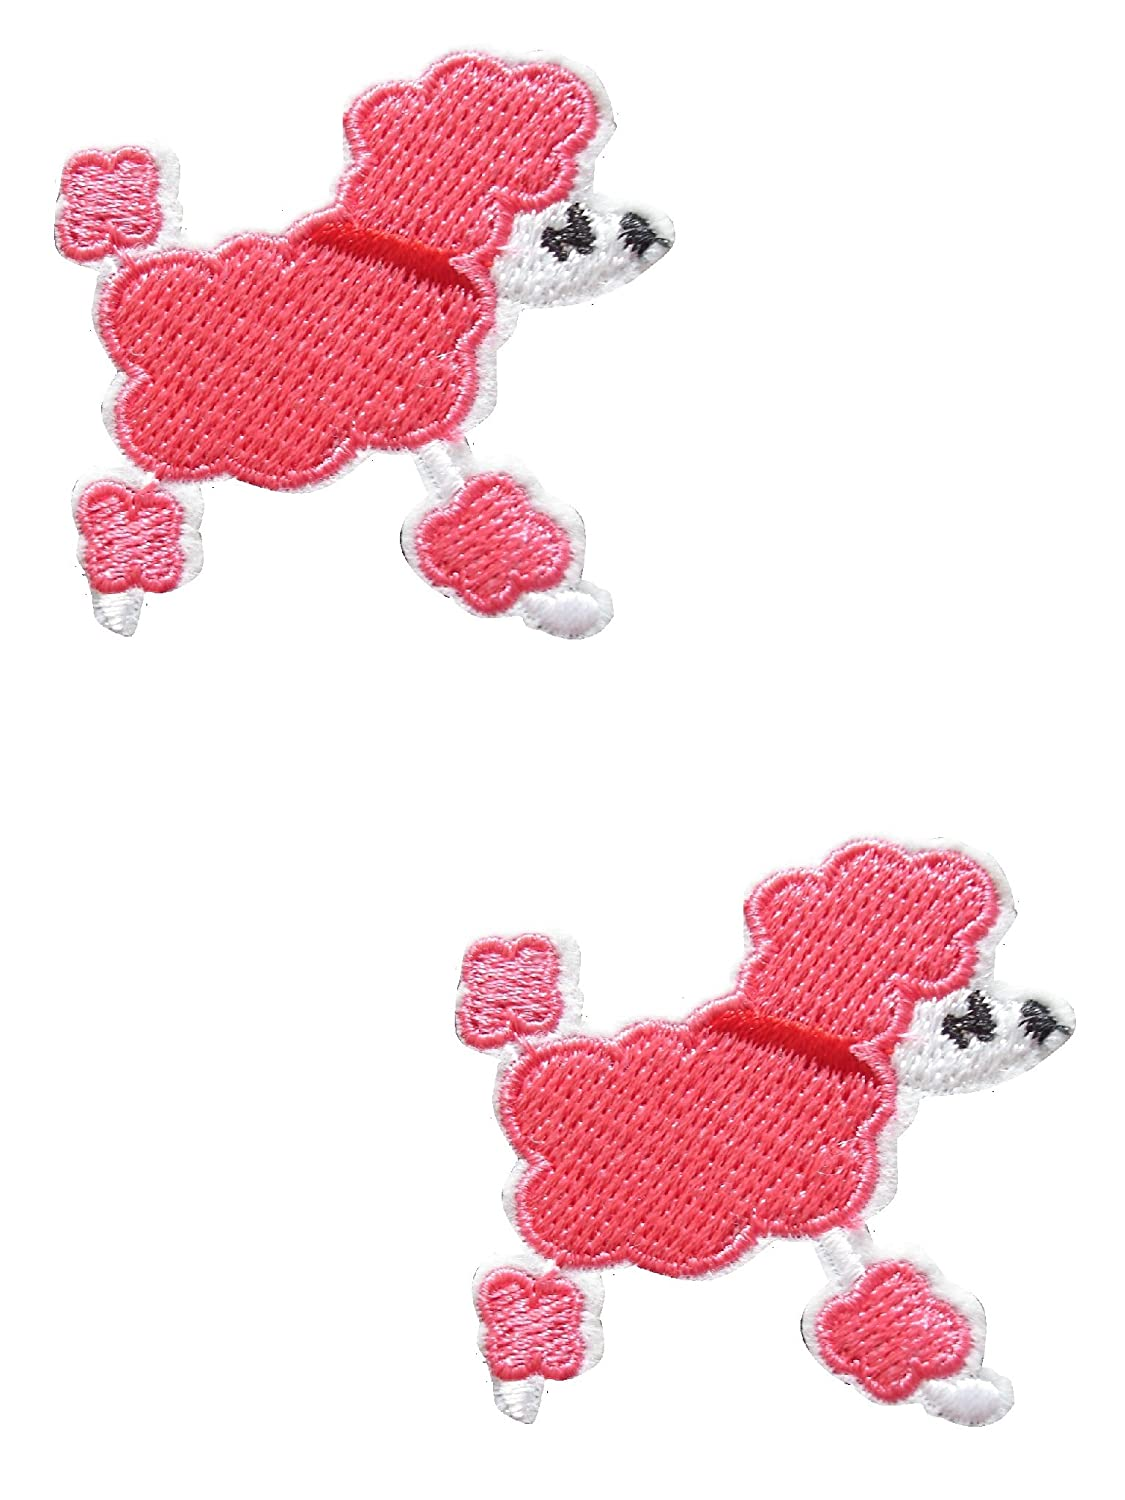 2 pieces POODLE DOG Iron On Patch Applique Motif Fabric Puppy Decal 1.8 x 1.8 inches (4.5 x 4.5 cm)